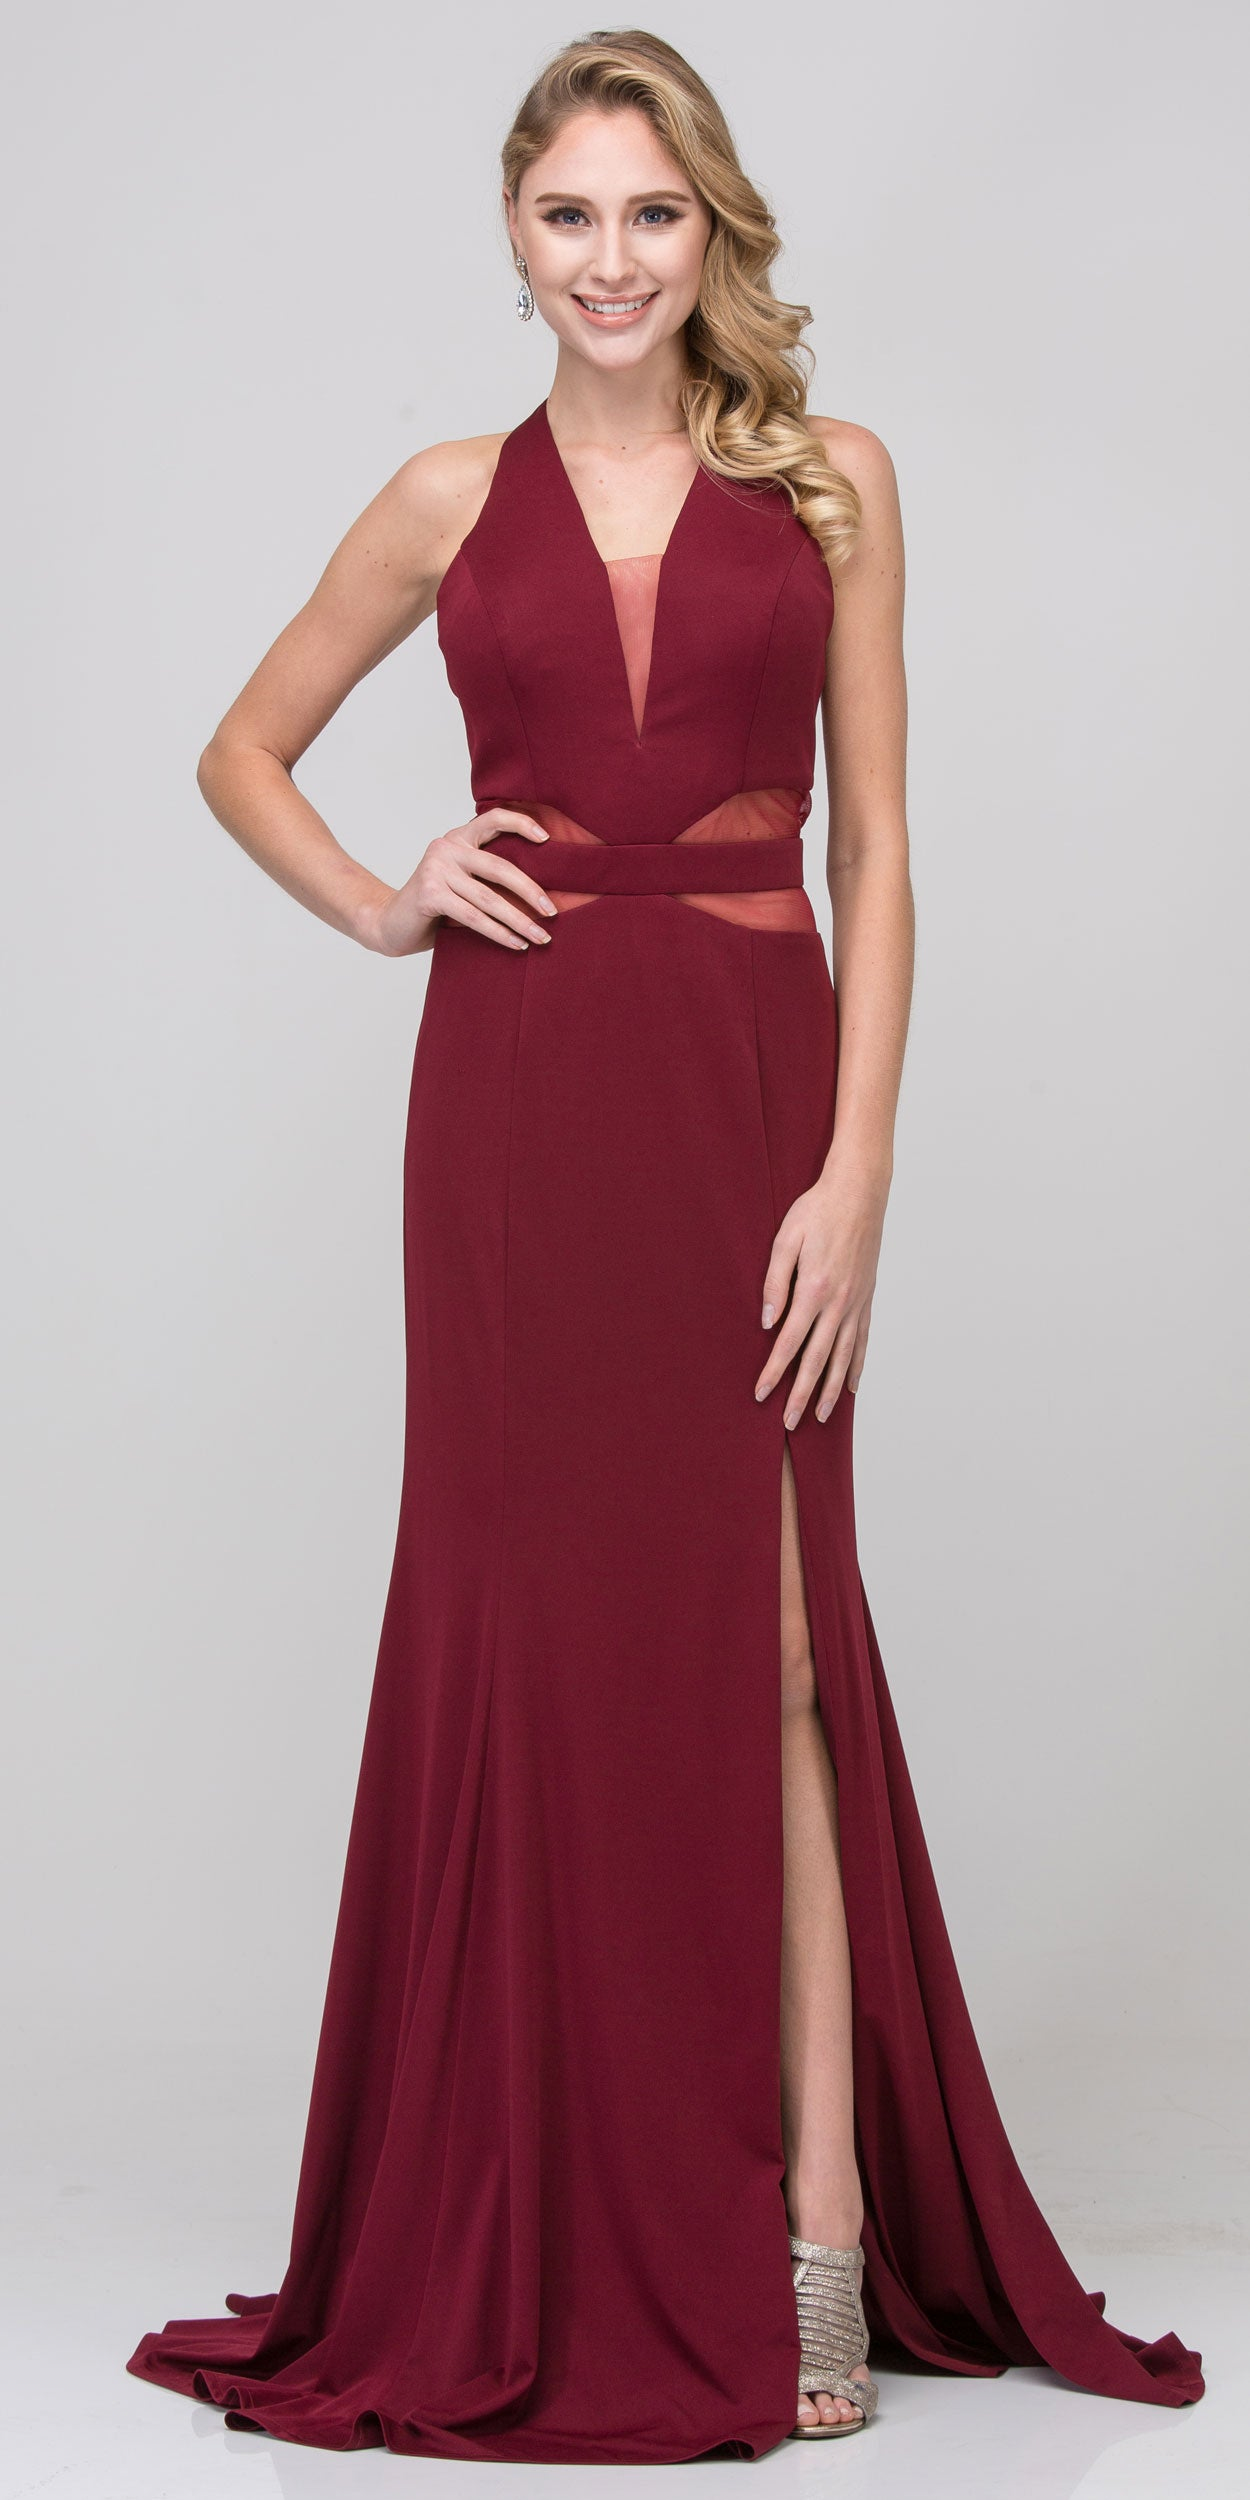 Image of Halter Neck Mesh Panels Front Slit Long Formal Prom Dress in Burgundy